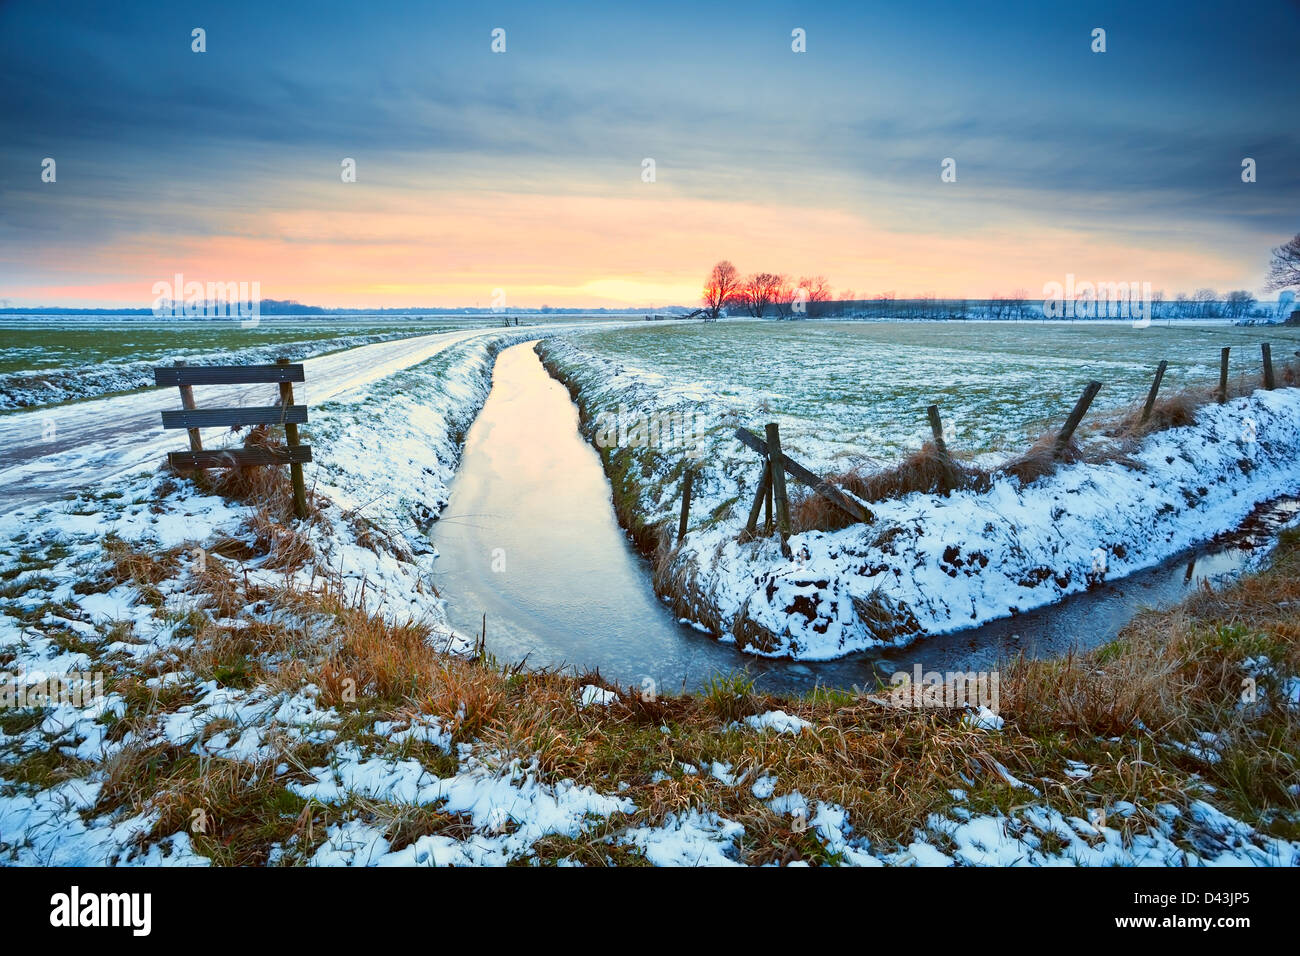 dramatic sunset over frozen river in Dutch farmland - Stock Image